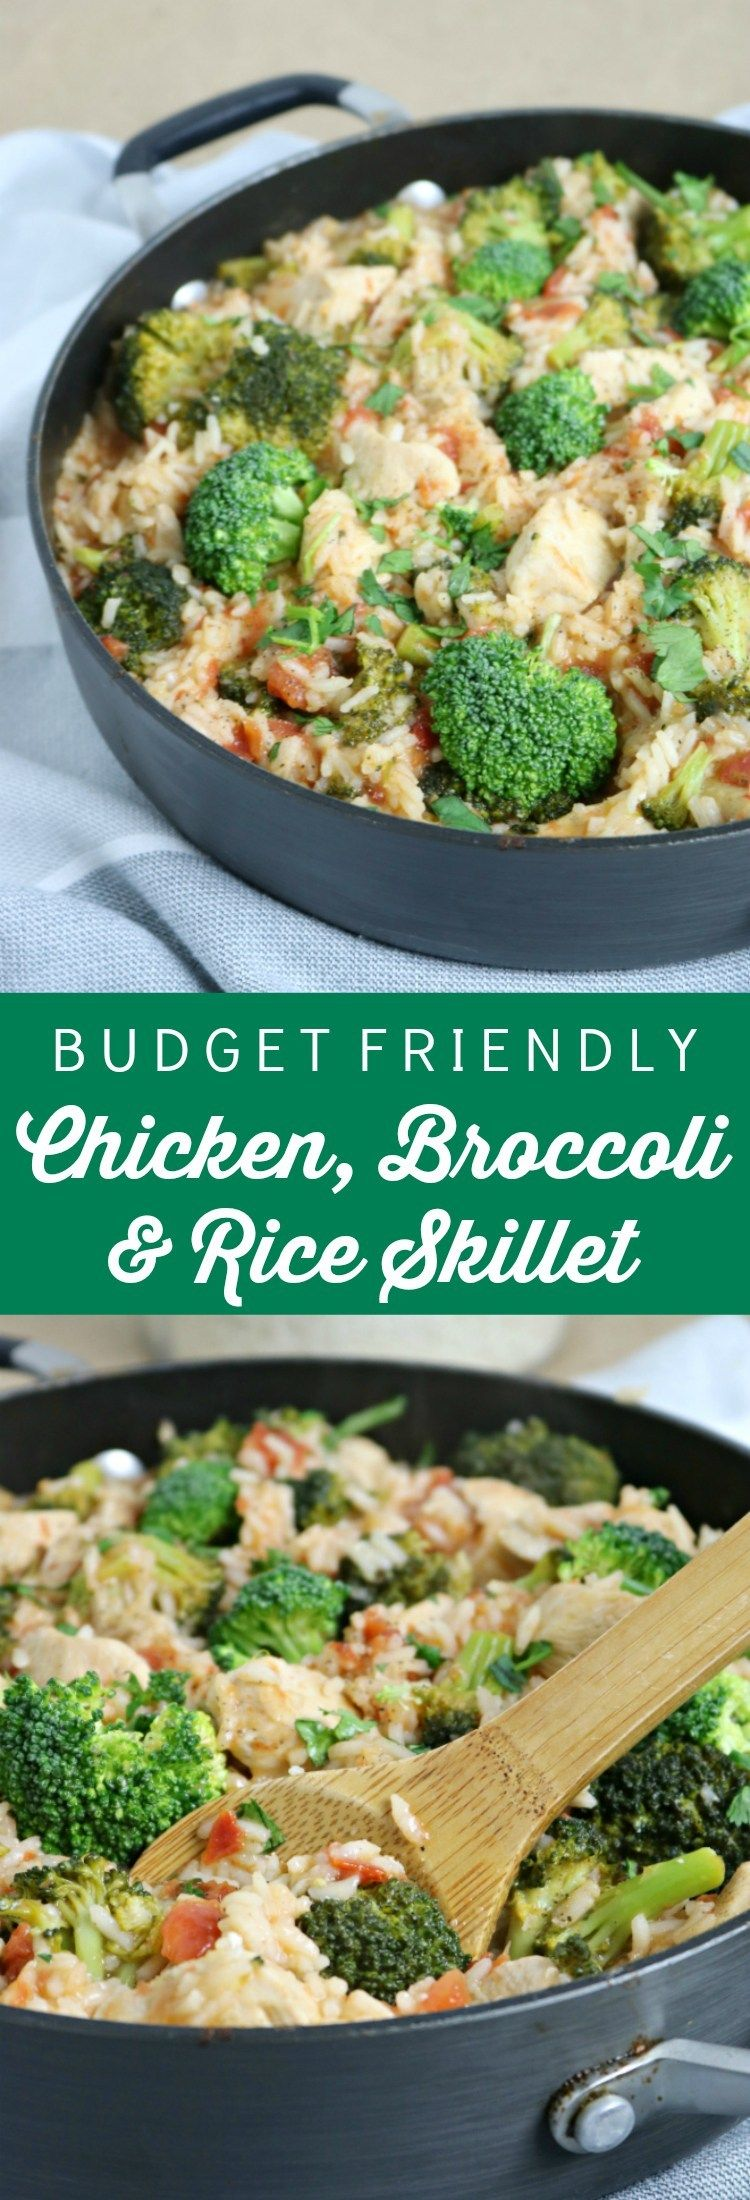 Chicken And Rice Skillet With Broccoli Blue Cheese Bungalow Recipe One Pot Meals Cheap Healthy Meals Cheap Dinner Recipes